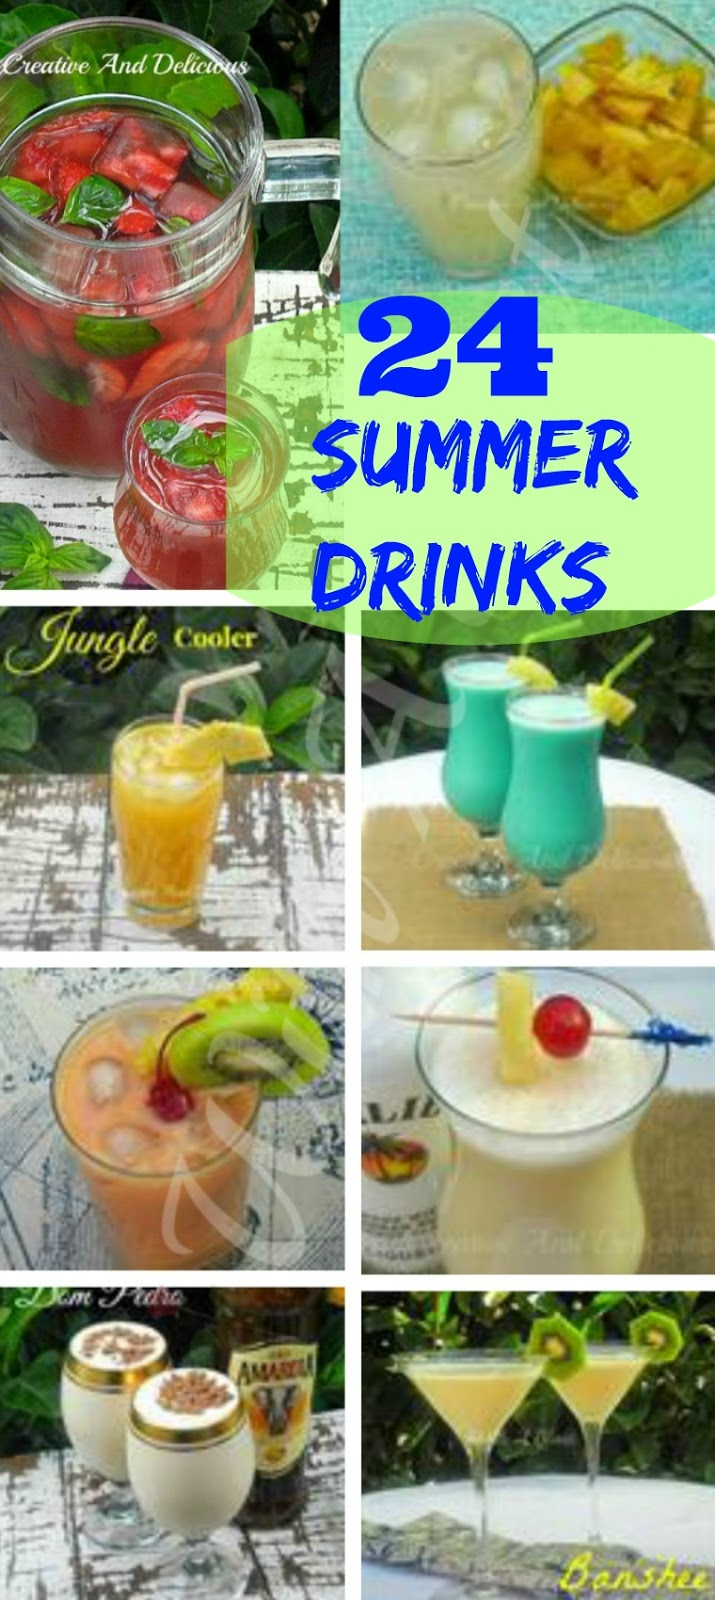 24 Summer Drinks ~ This Thirst Quenching Collection includes #Milkshakes #Smoothies #Cocktails #AlcoholicDrinks #NonAlcoholicDrinks #FruitPunch